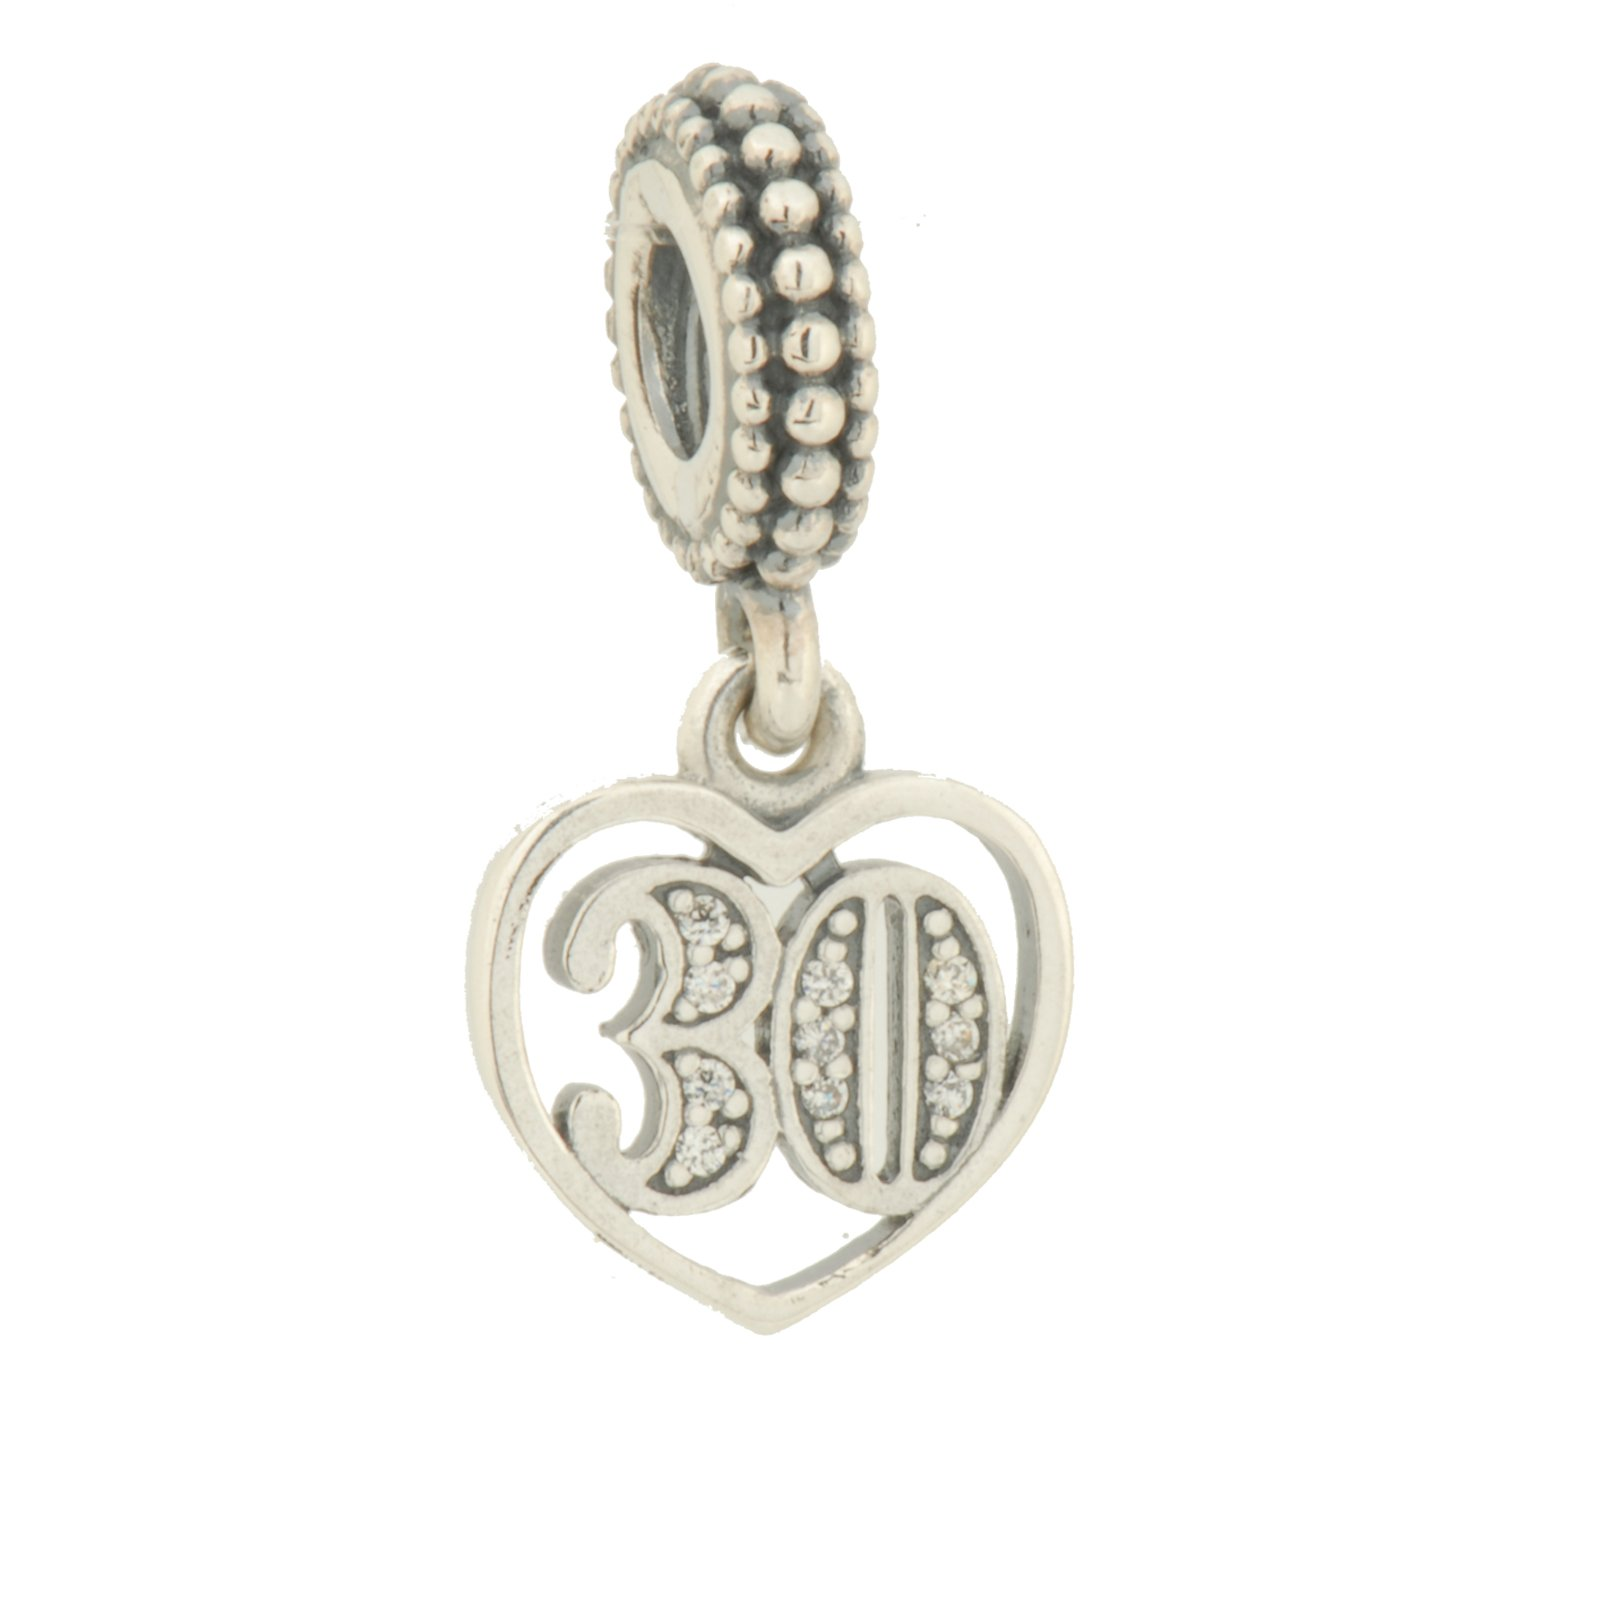 Pandora 791287cz 30 Years of Love Charm